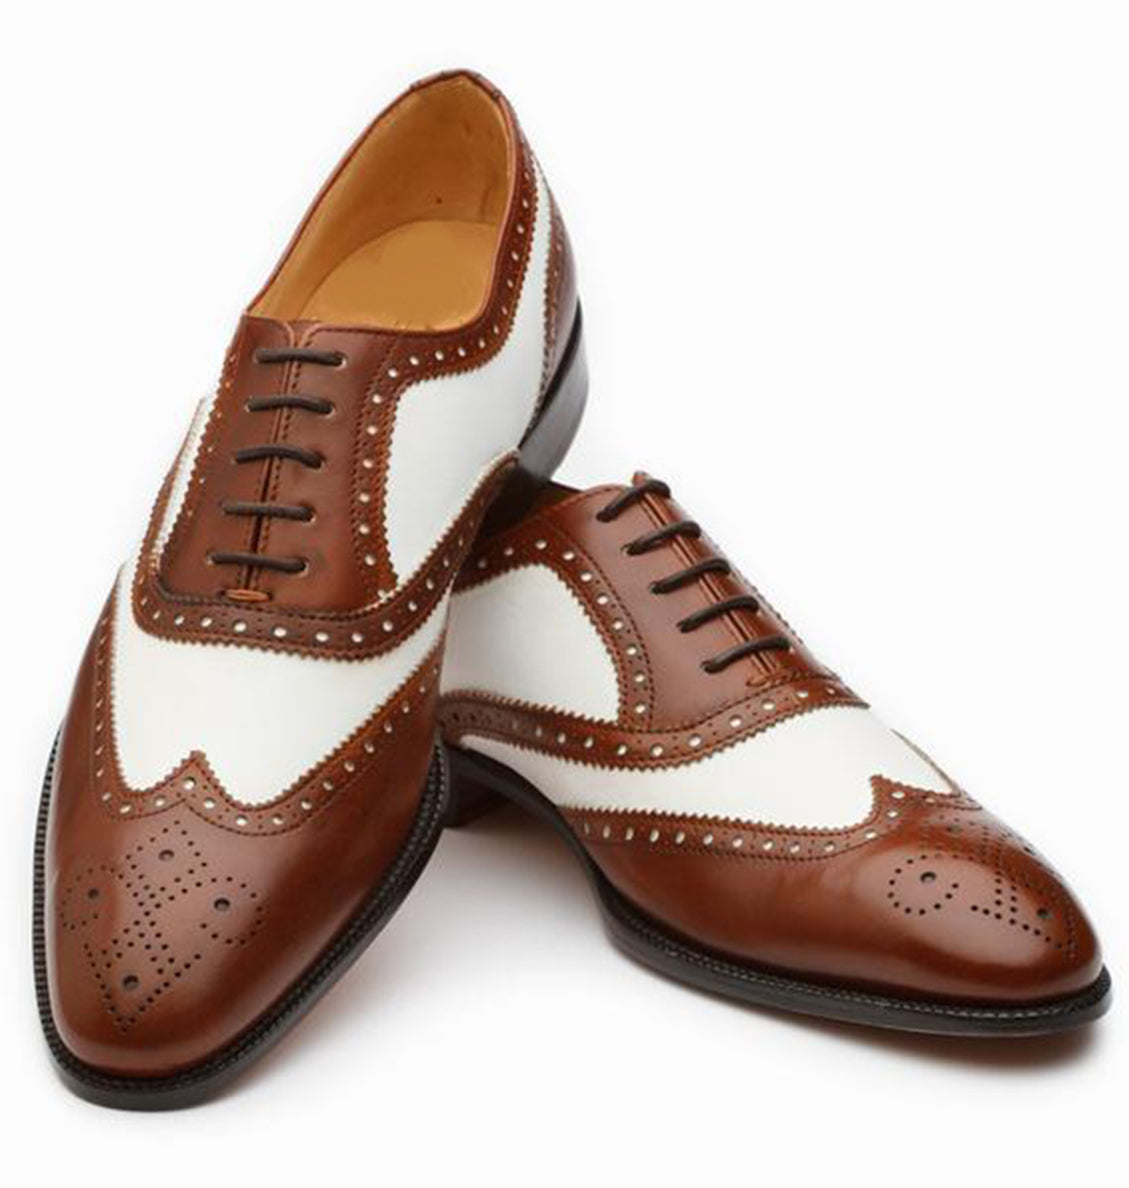 Dark Brown White Leather Formal Oxford Wingtip Brogue Lace Up Shoes for Men with Leather Sole. Goodyear Welted Construction Available.